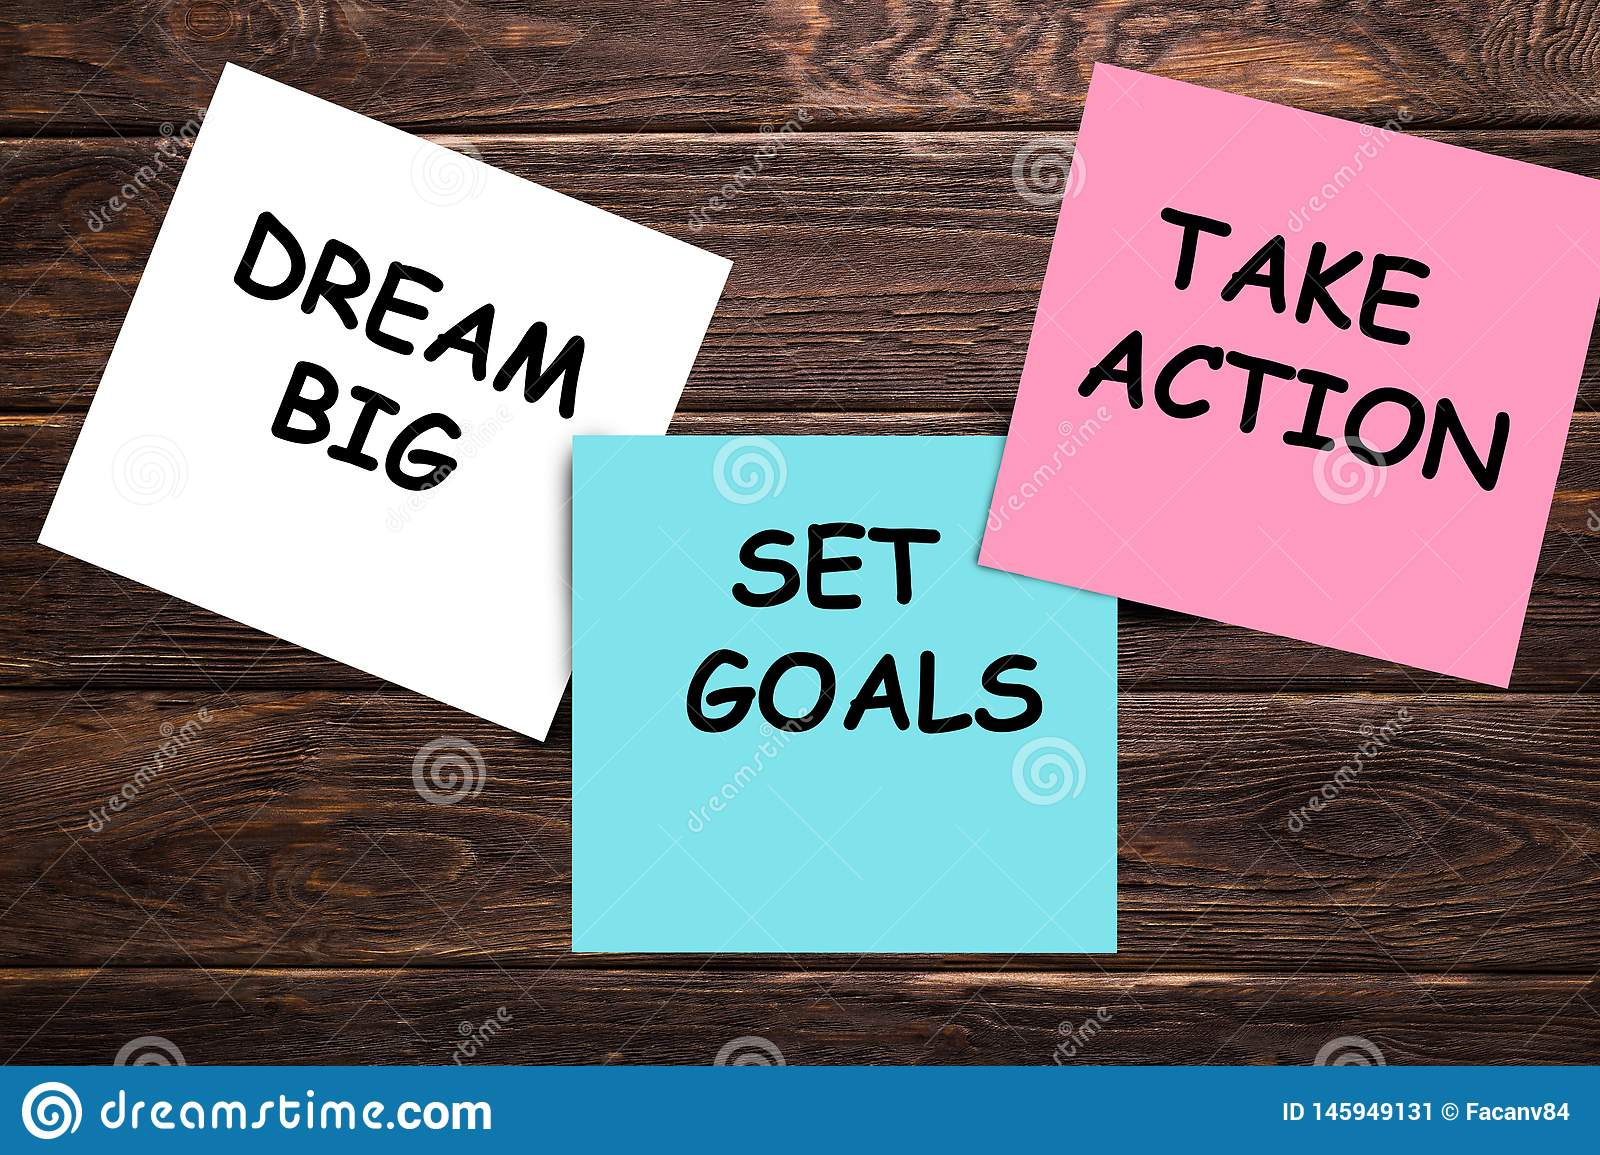 Dream big, set goals, take action concept - motivational advice or reminder on colorful sticky notes  on wooden table.